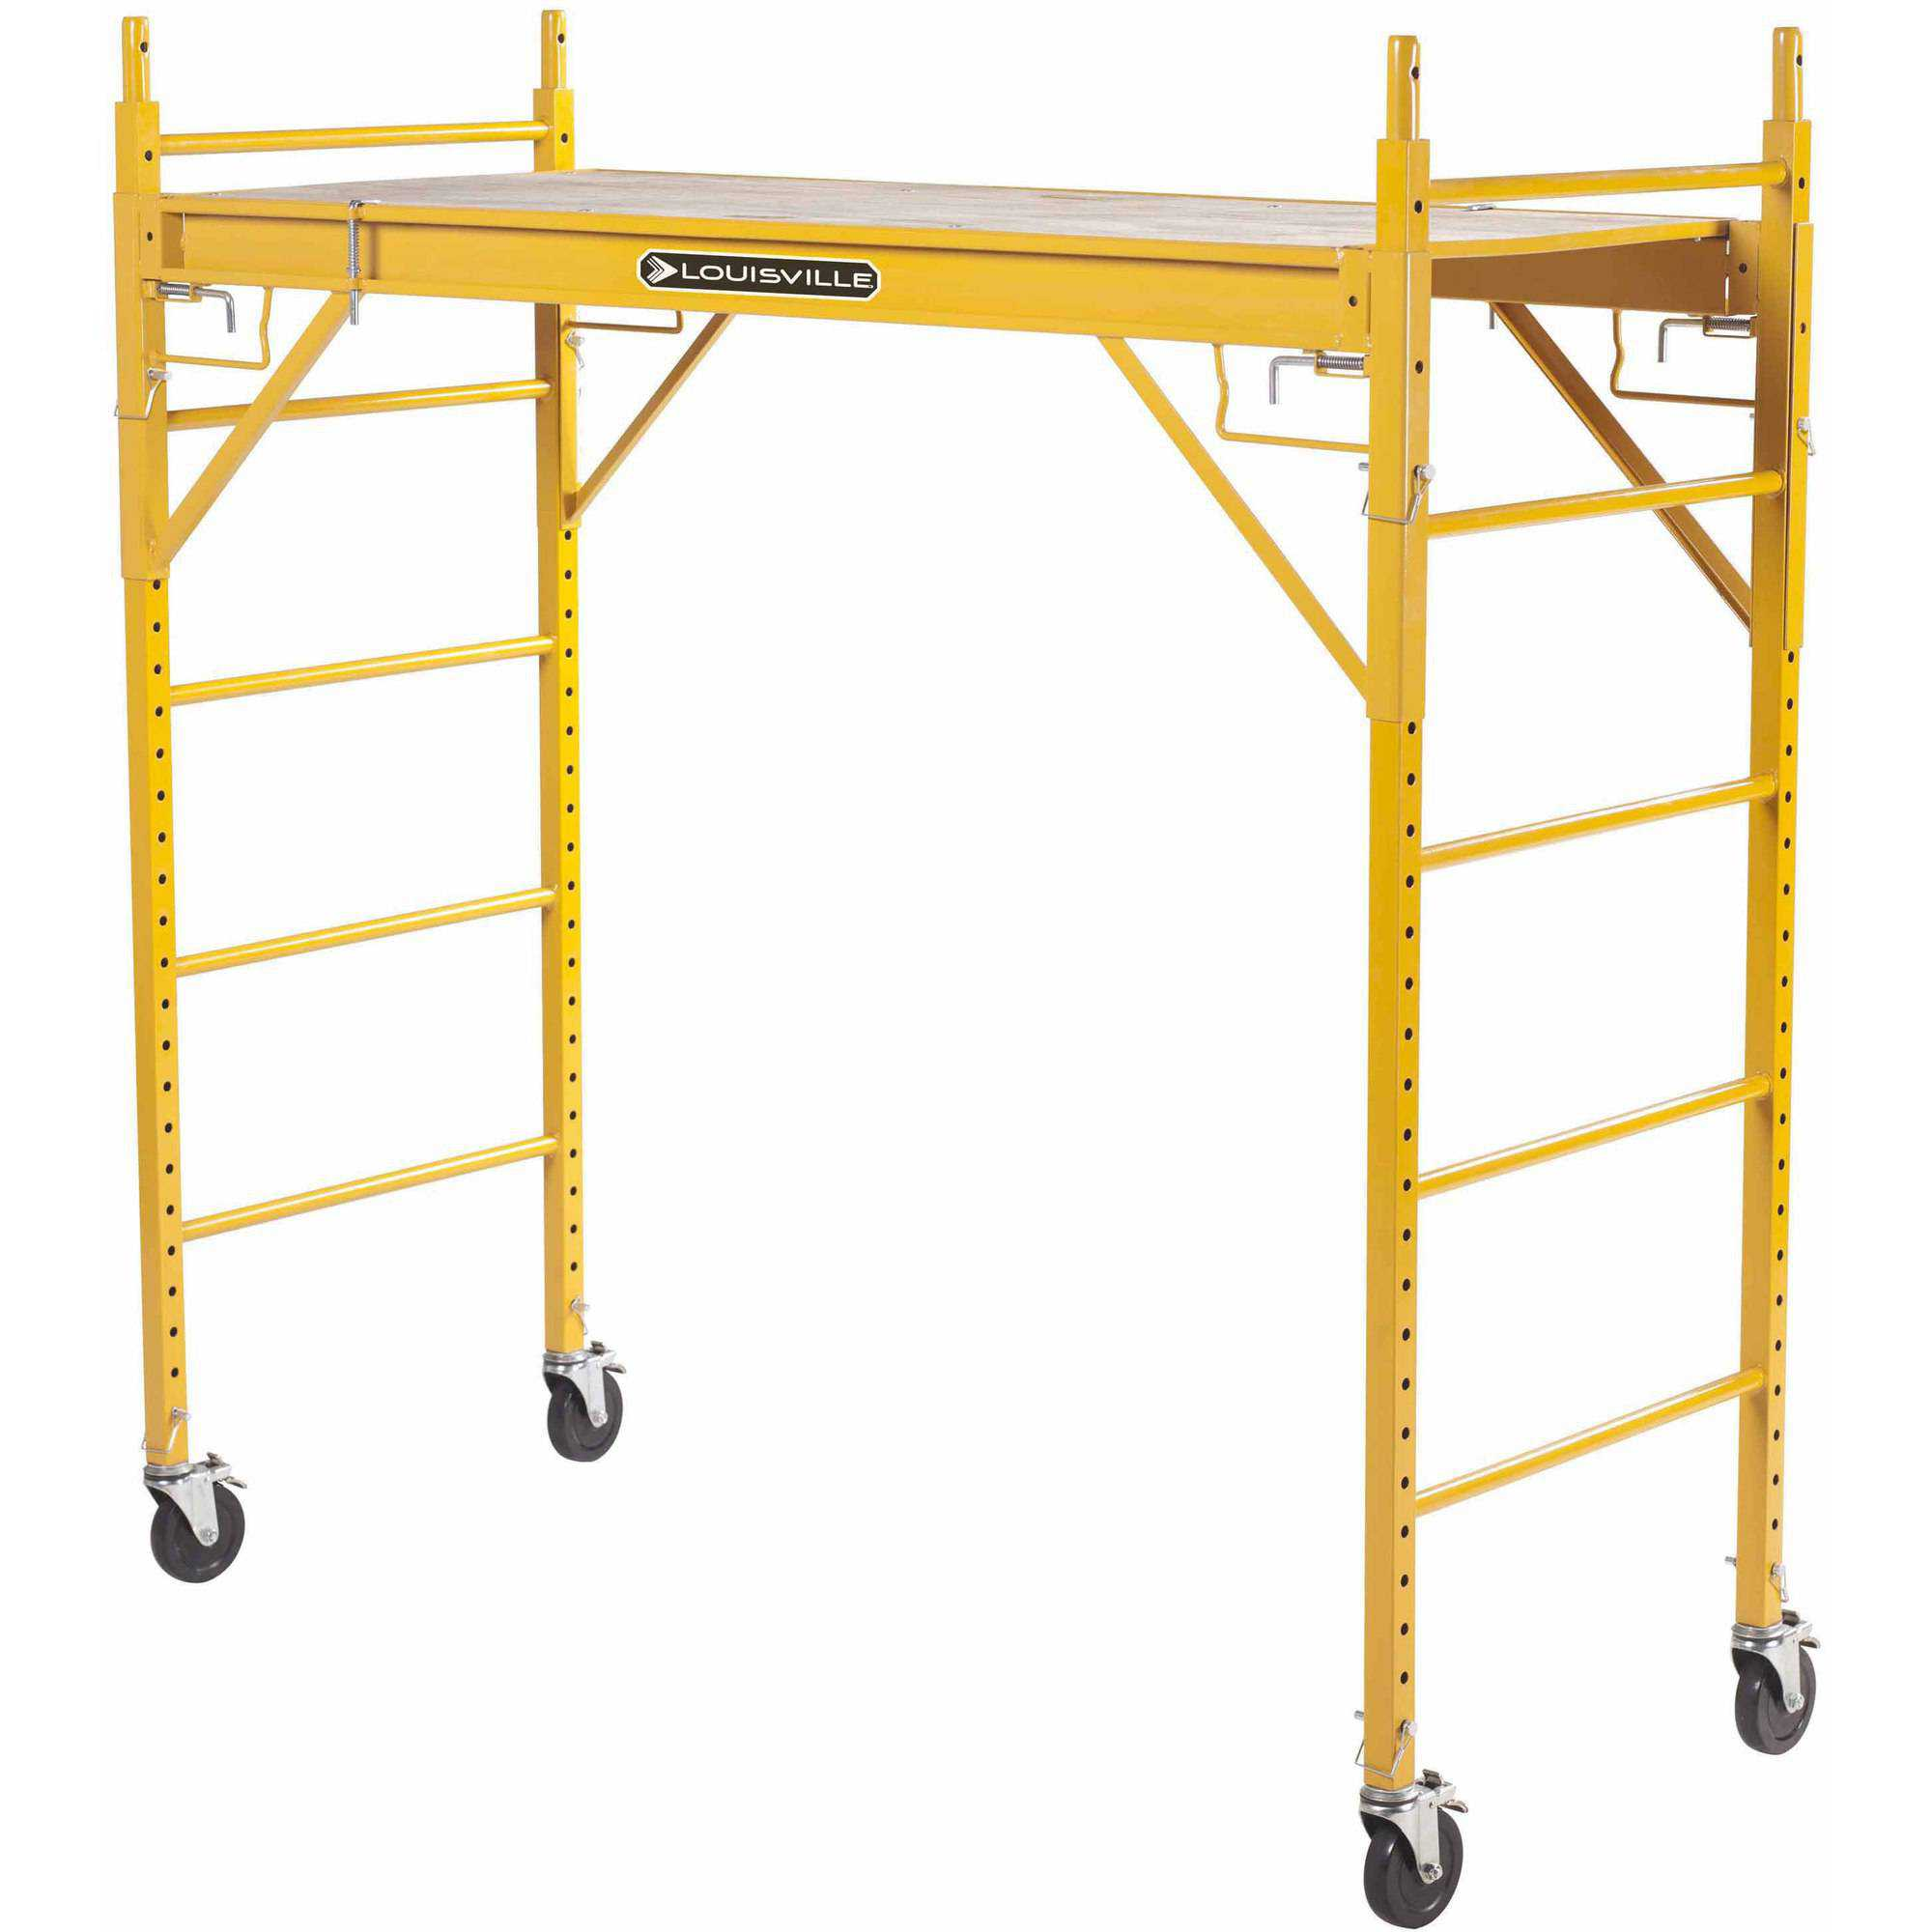 Louisville Ladder 6' x 6' Steel Rolling Scaffold, 1000 lbs Duty Rated